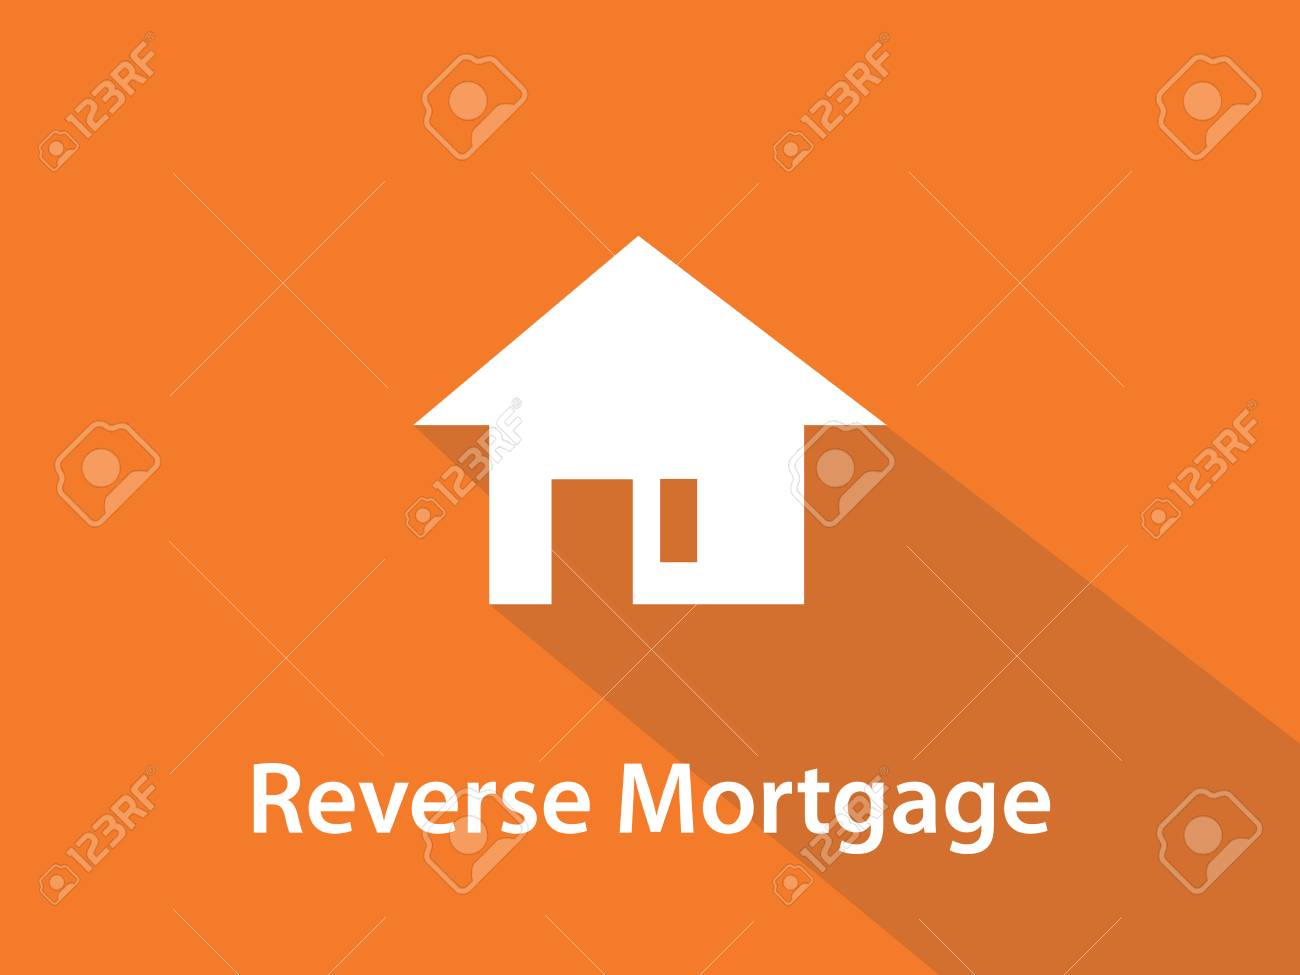 reverse mortgage white text illustration with white house silhouette